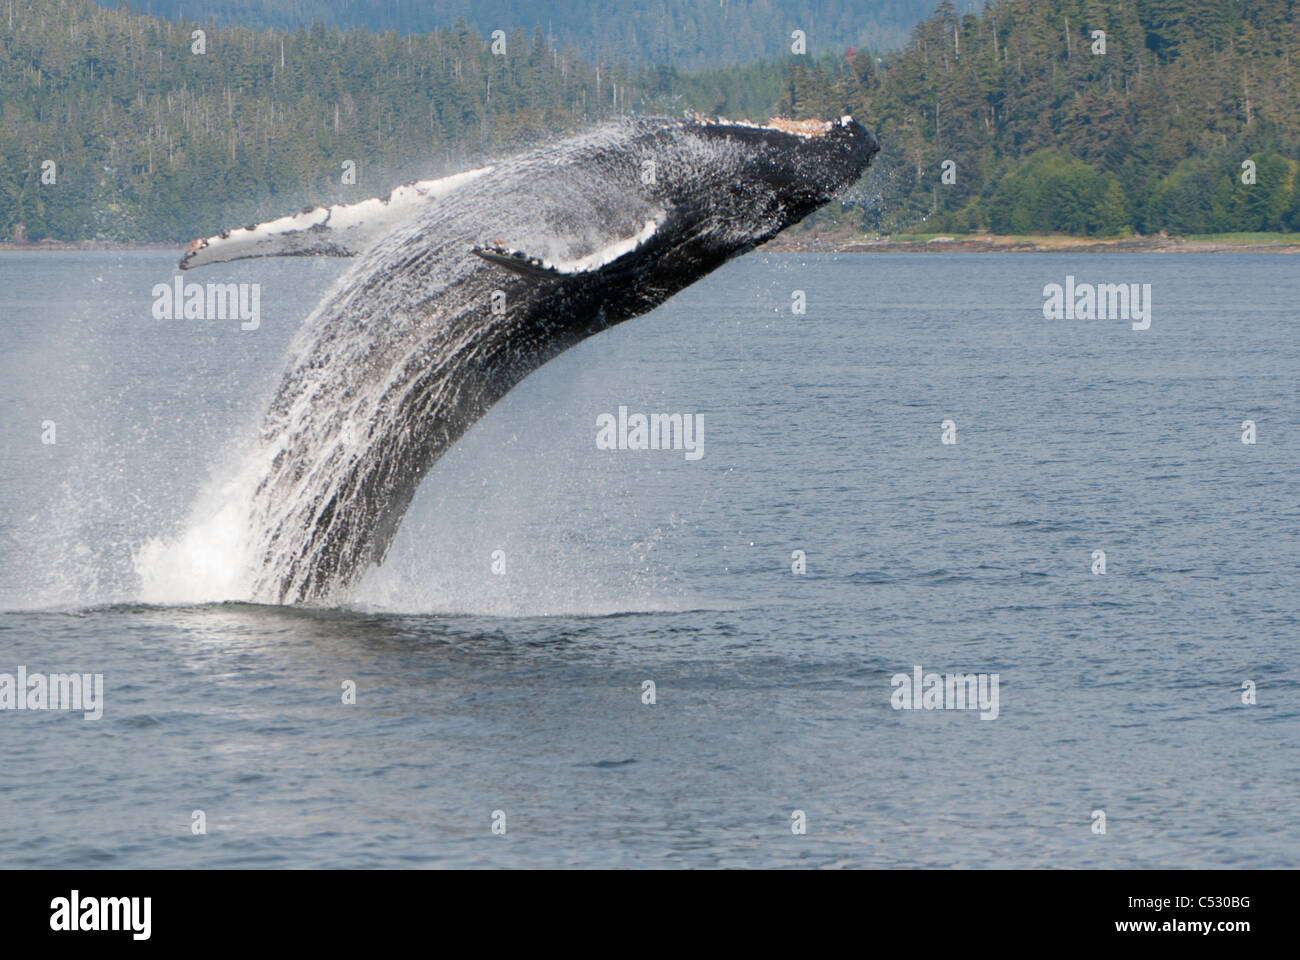 Humpback Whale breaching in Frederick Sound, Inside Passage, Southeast Alaska, Summer - Stock Image